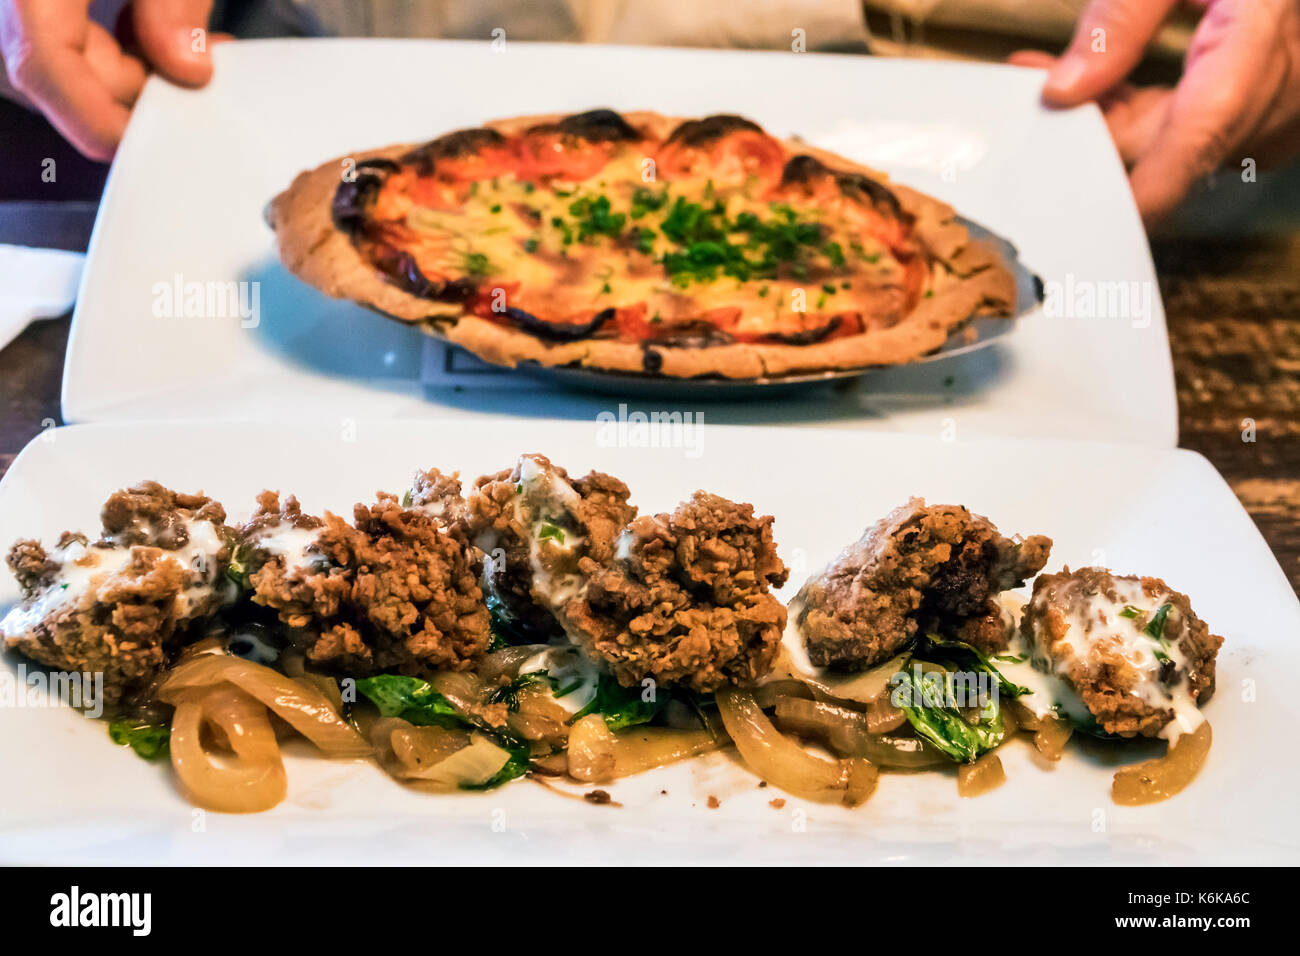 Charleston South Carolina SC Historic Downtown Virginia's On King restaurant southern cuisine dining fried chicken livers tomato pie - Stock Image